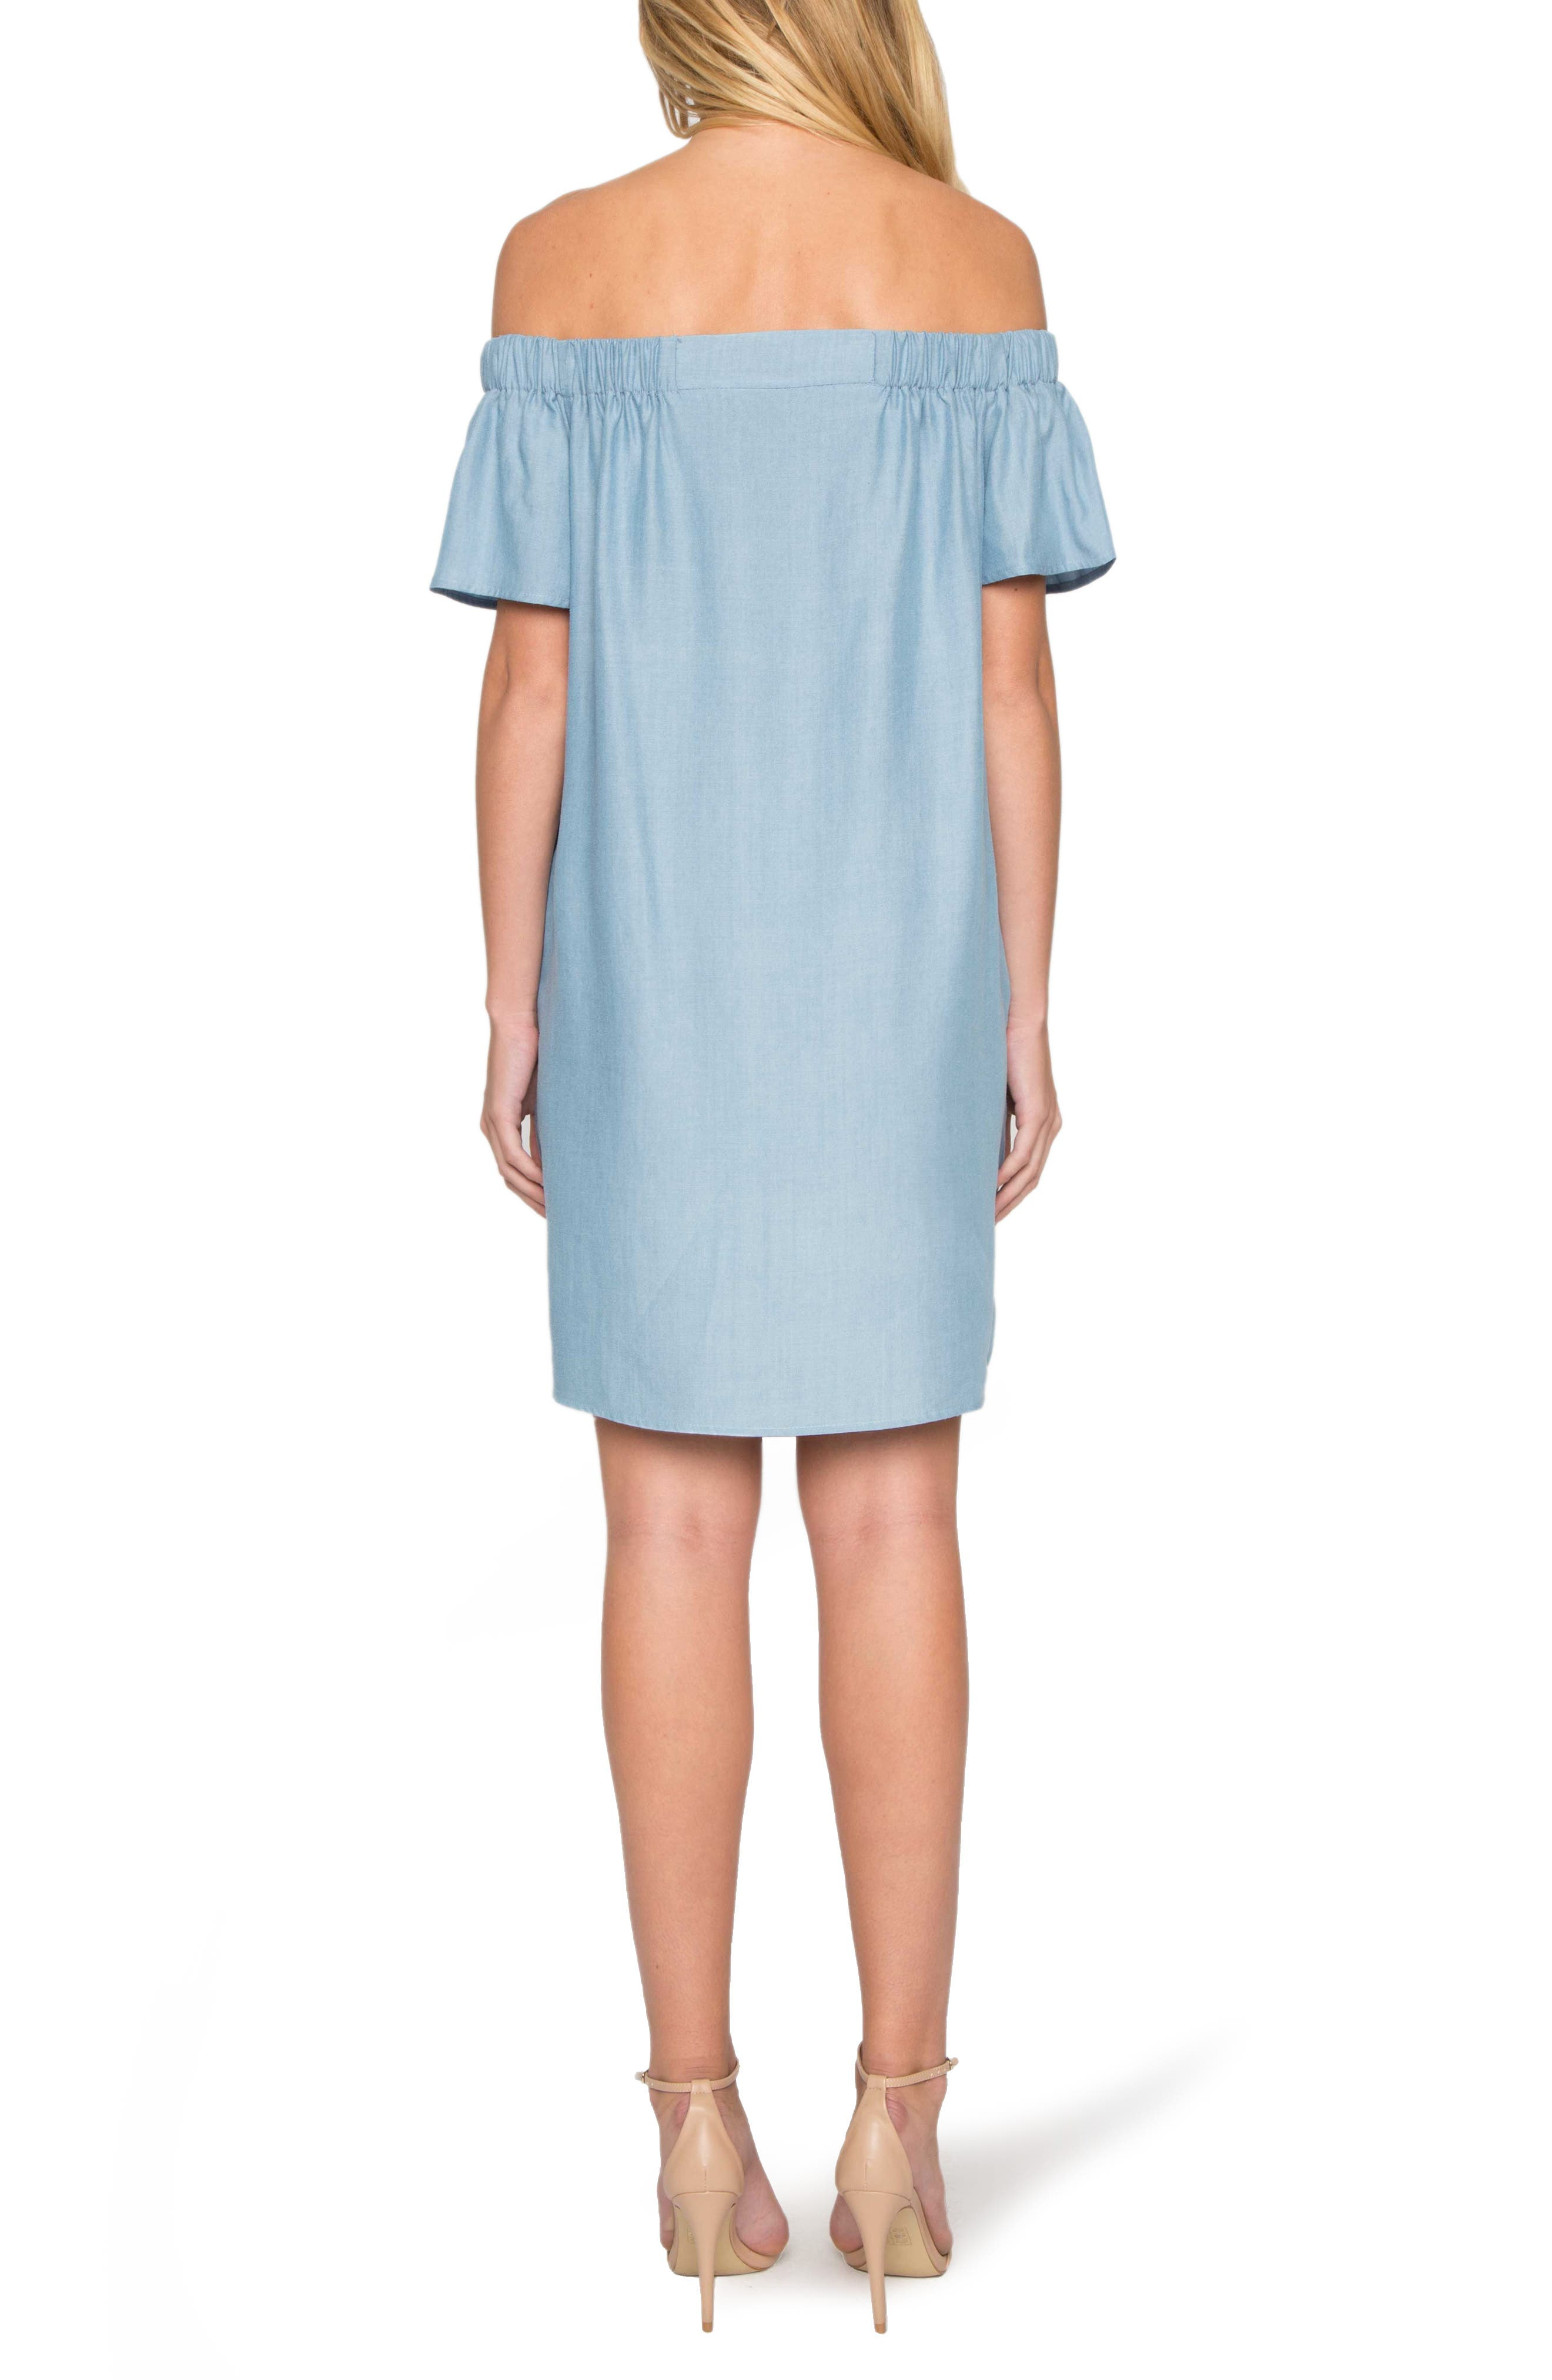 WILLOW & CLAY, Off the Shoulder Minidress, Alternate thumbnail 2, color, 453